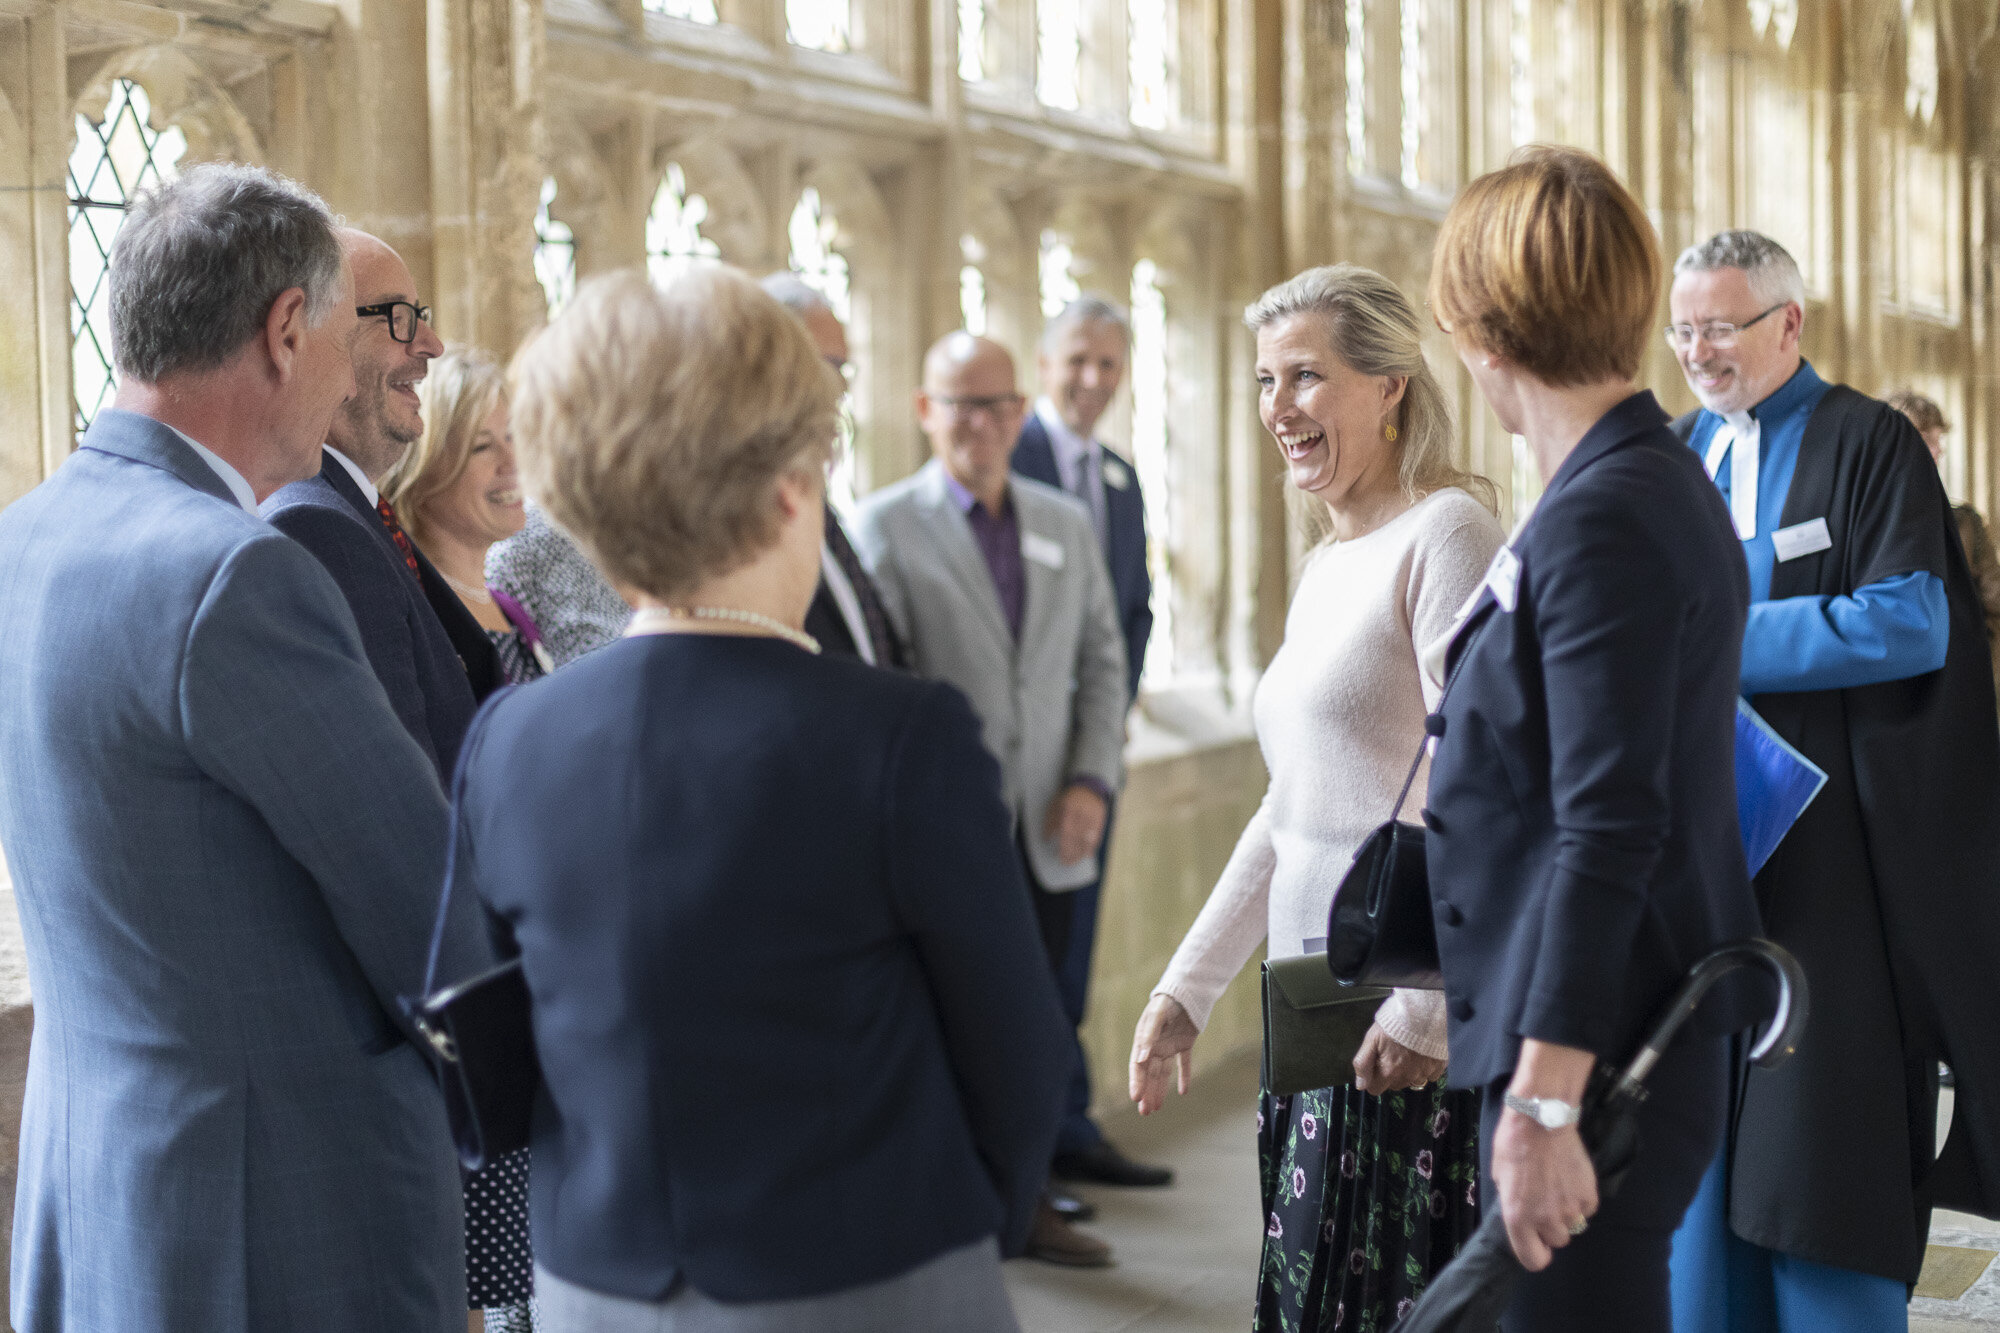 The Countess of Wessex visits Wells Cathedral Chorister Trust - September 2019 14.jpg